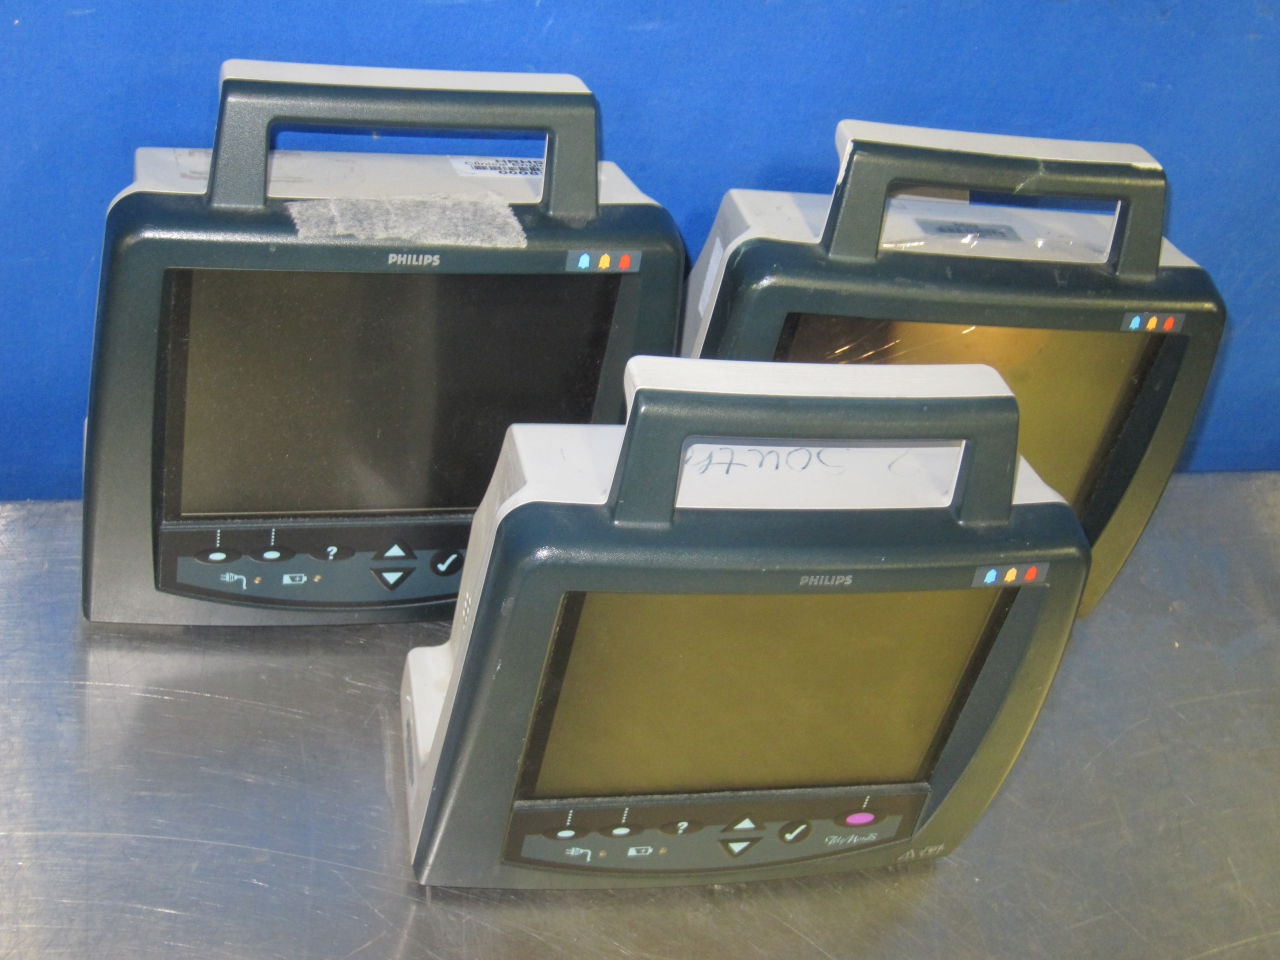 PHILIPS Telemon  - Lot of 3 Monitor